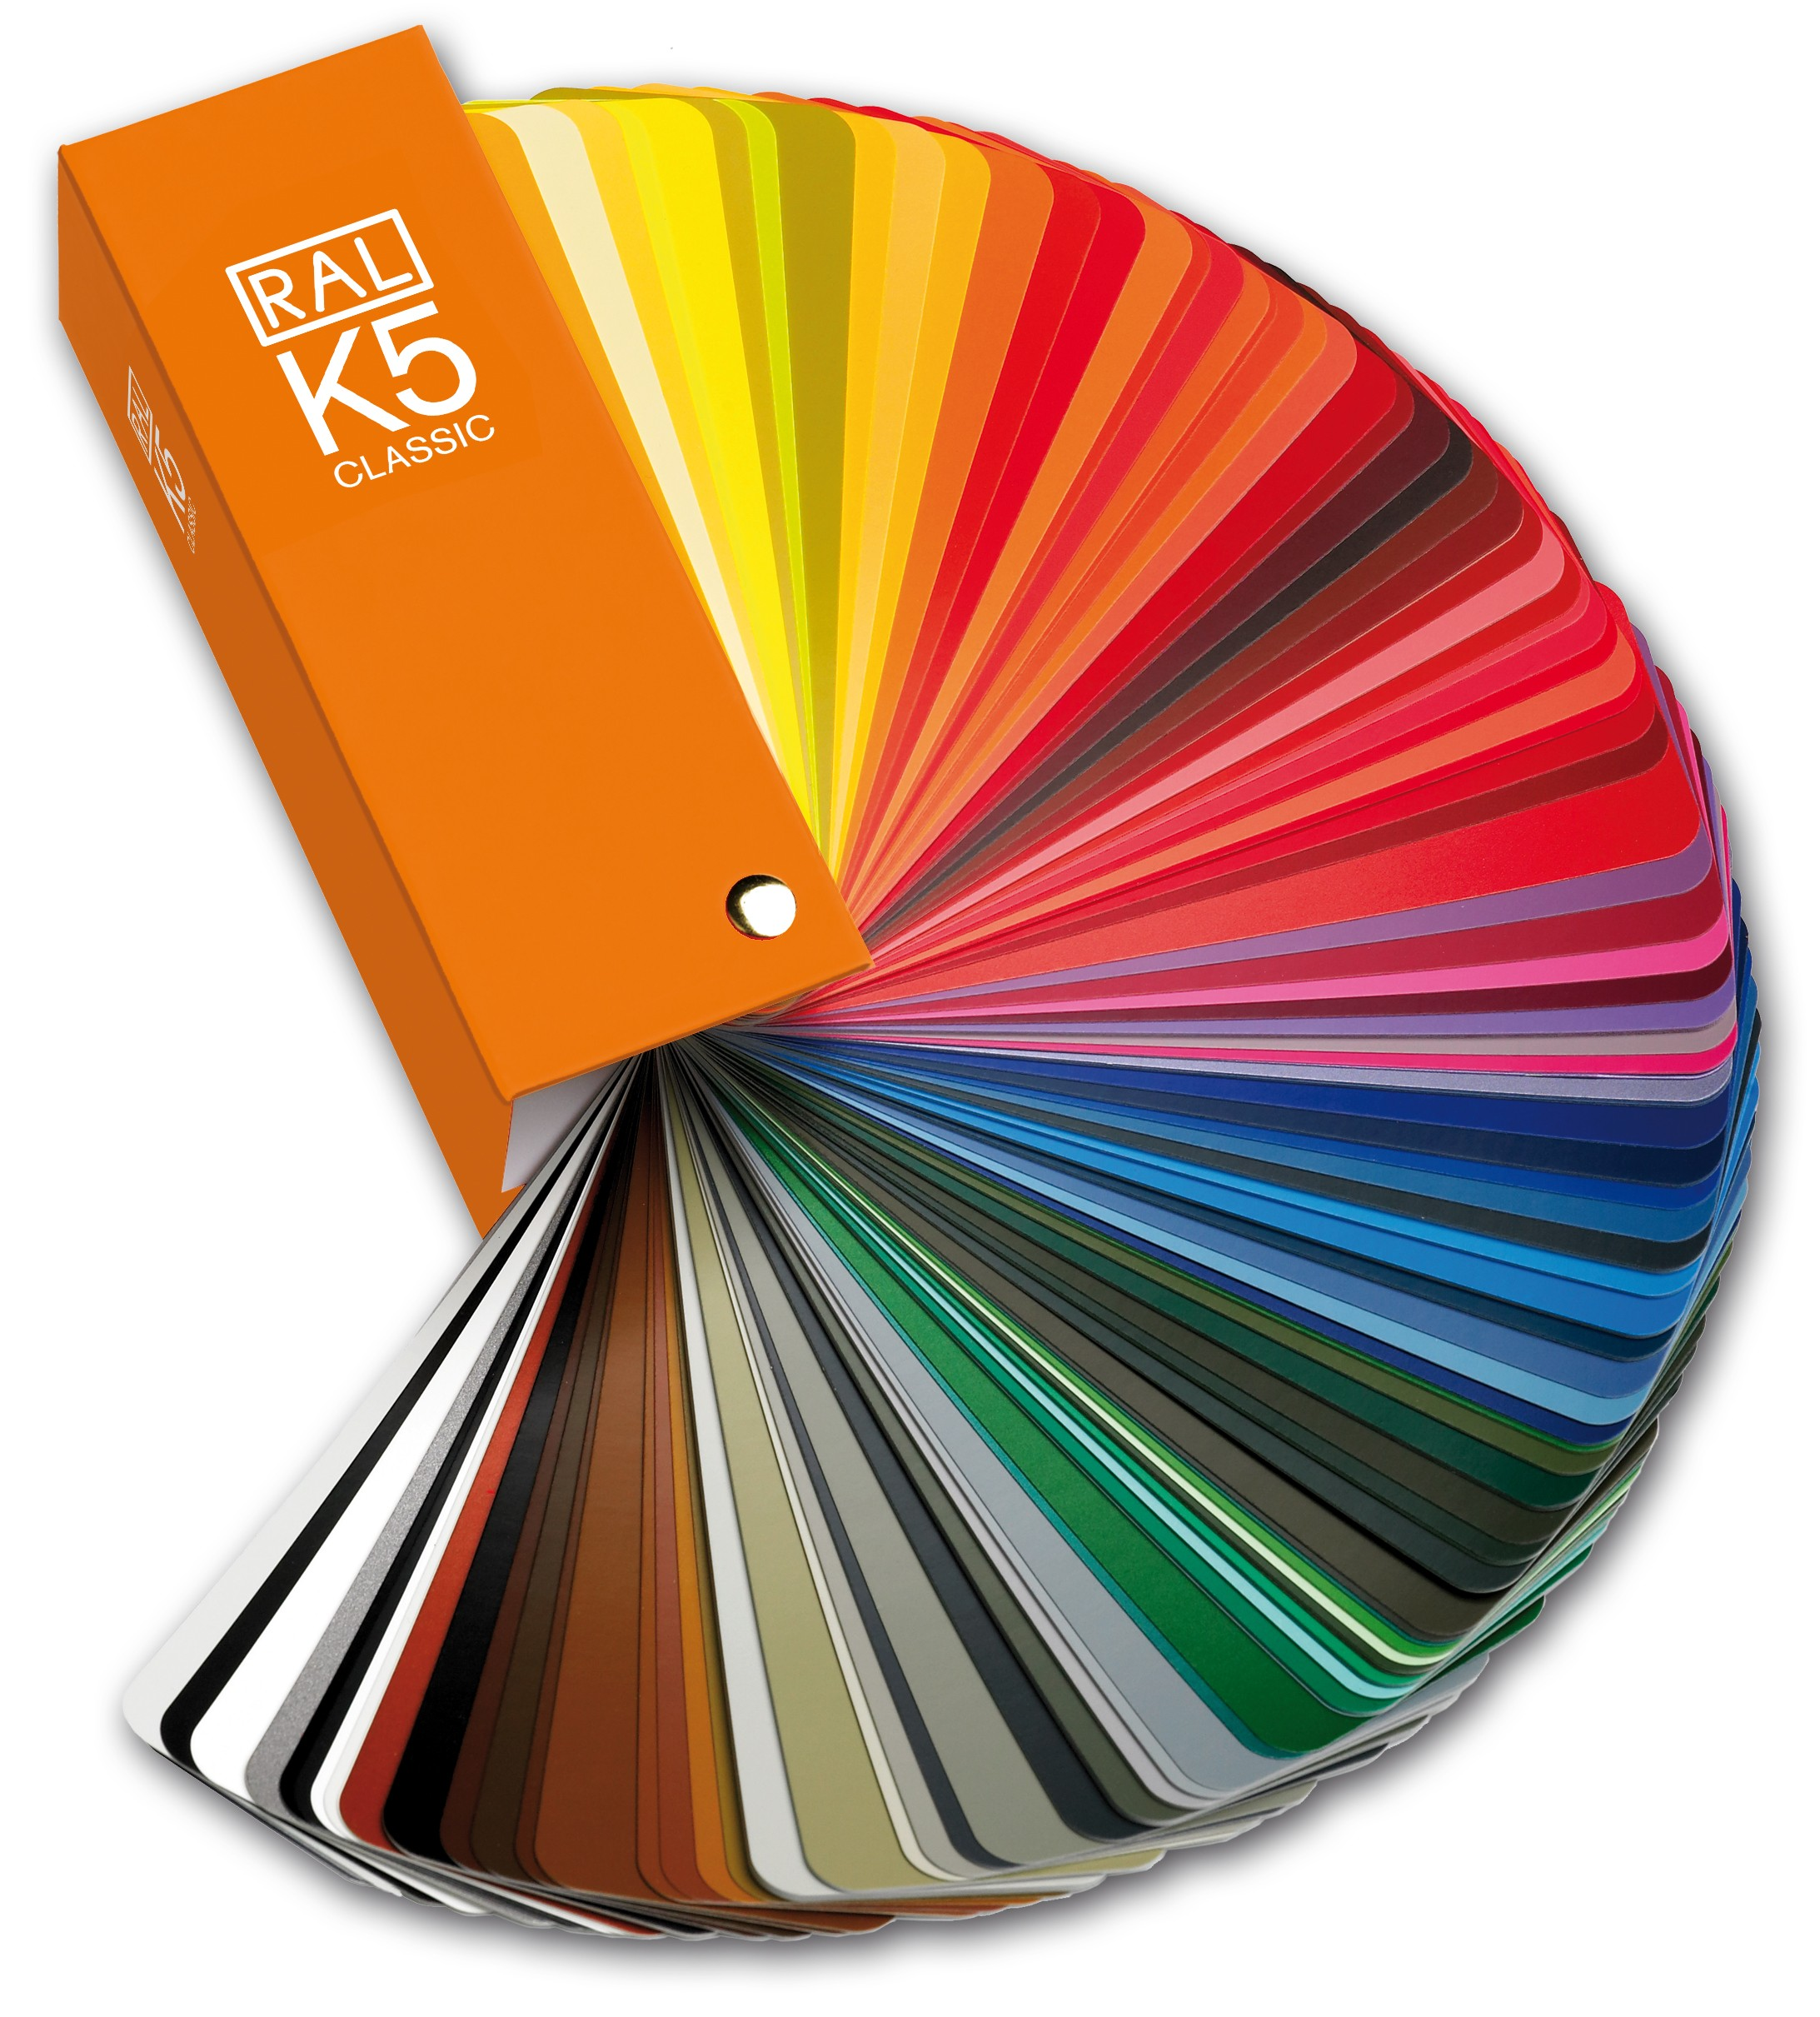 Chart Holder: RAL K5 Fächer RGB.jpg - Wikimedia Commons,Chart